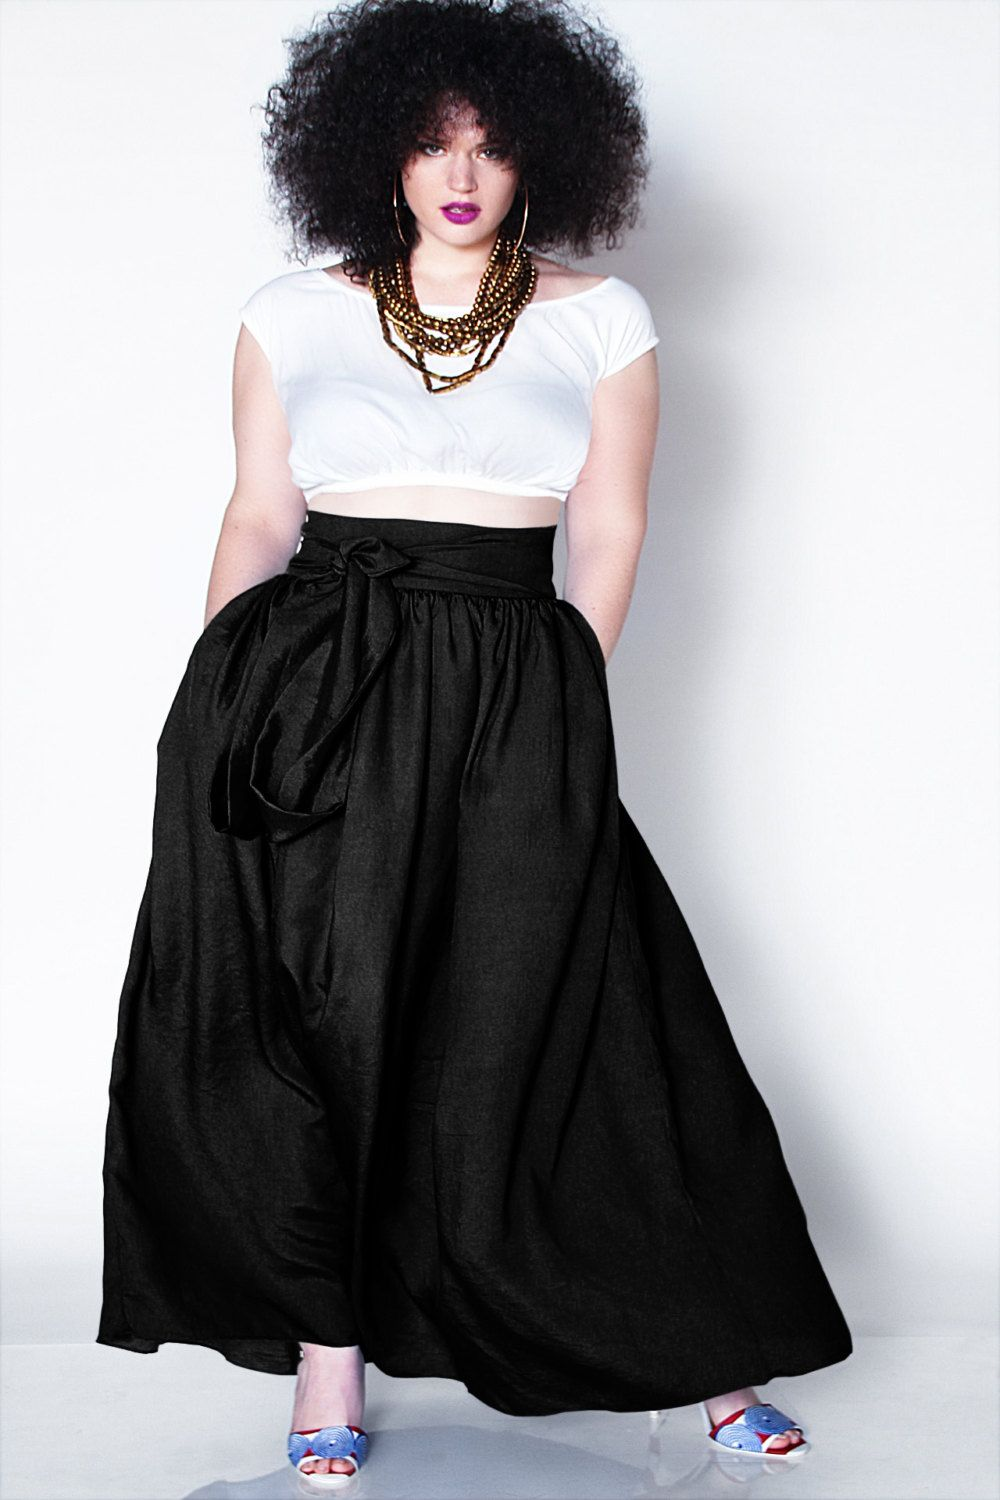 cd7ca0ce6 JIBRI Plus Size High Waist Maxi Skirt (attached wrap belt) by jibrionline  on Etsy